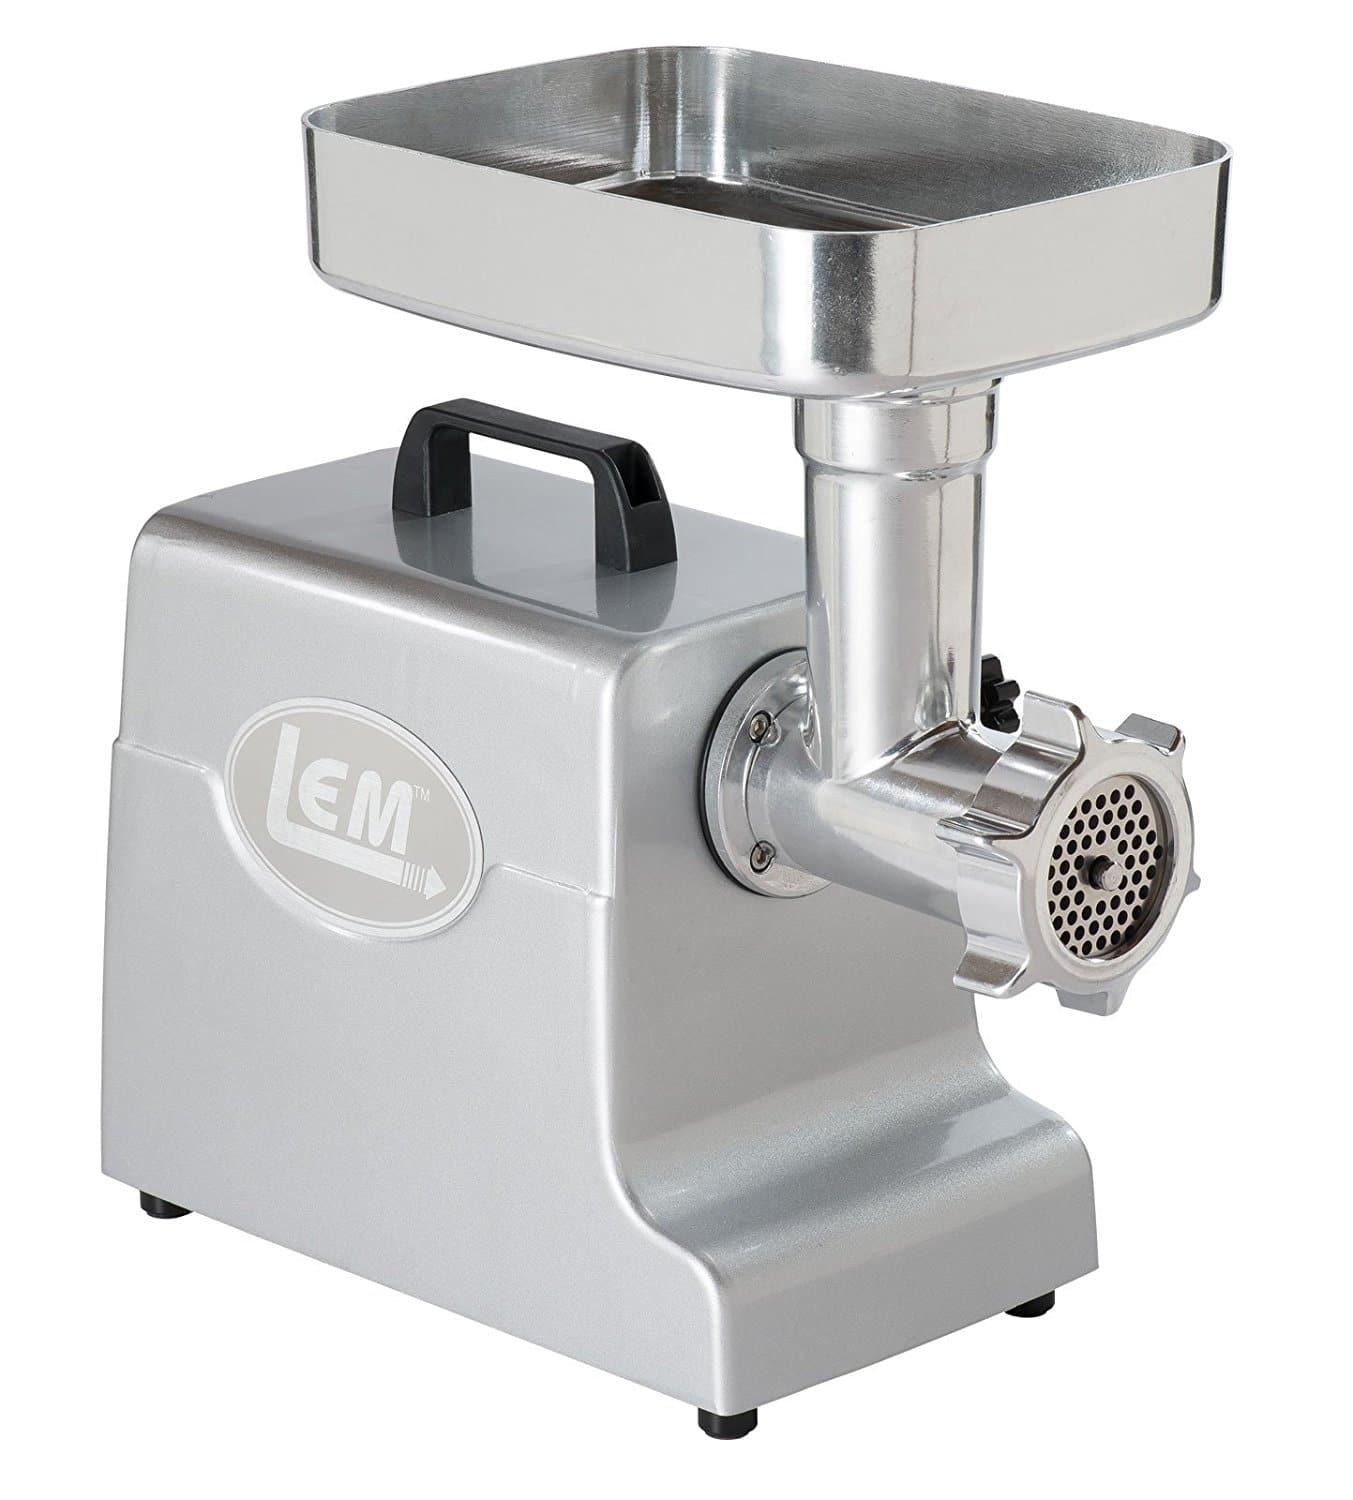 Lem Mighty Bite Meat Grinder Review Lem Meat Grinders